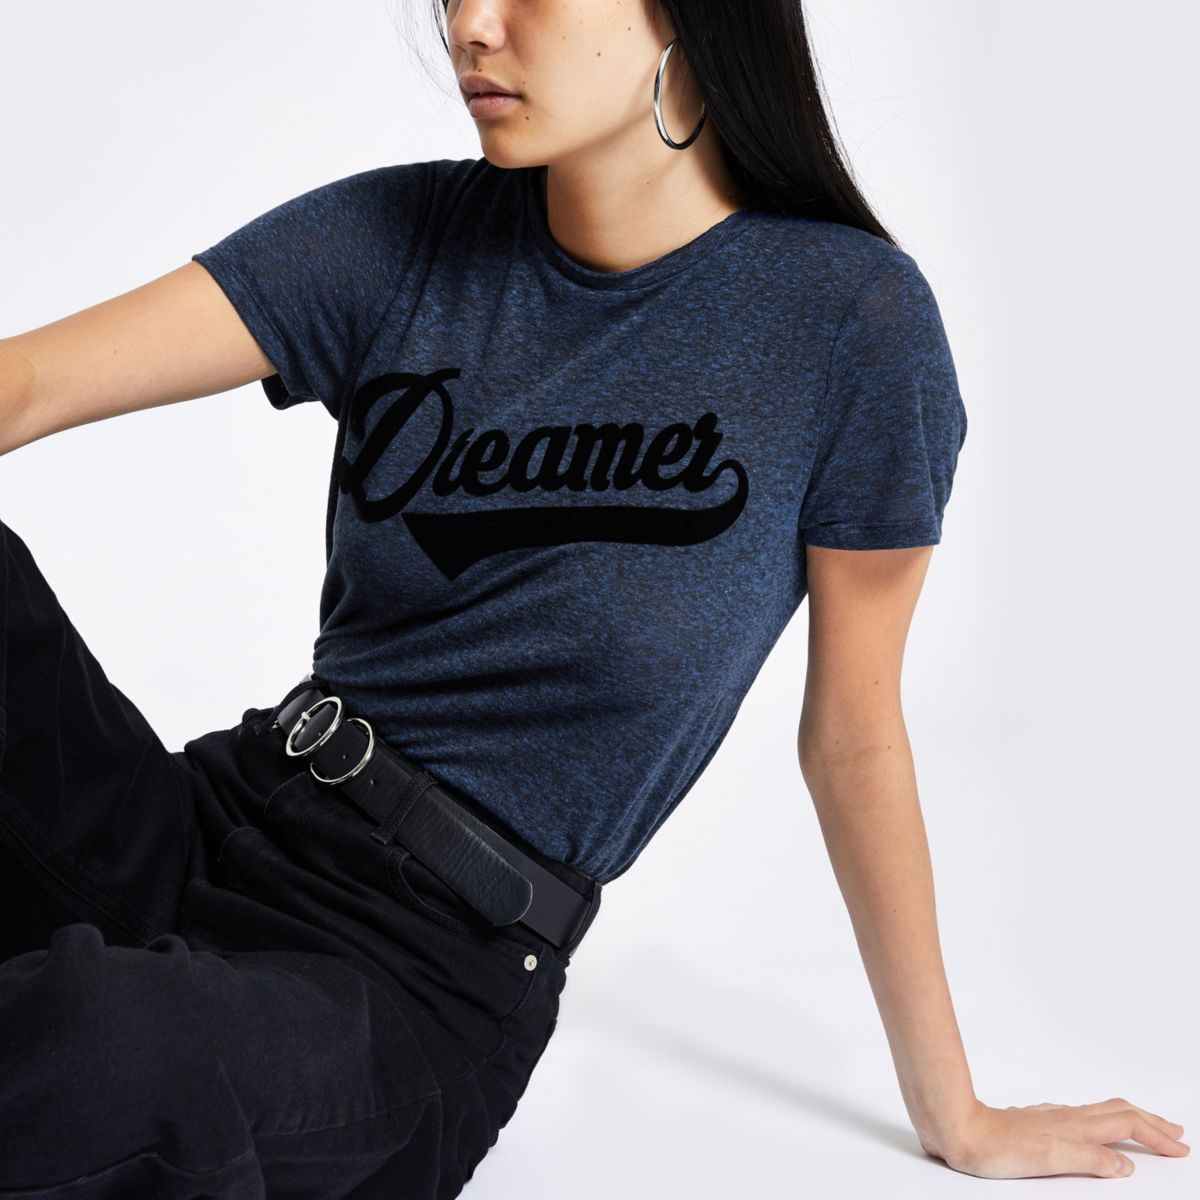 Navy 'dreamer' fitted T-shirt